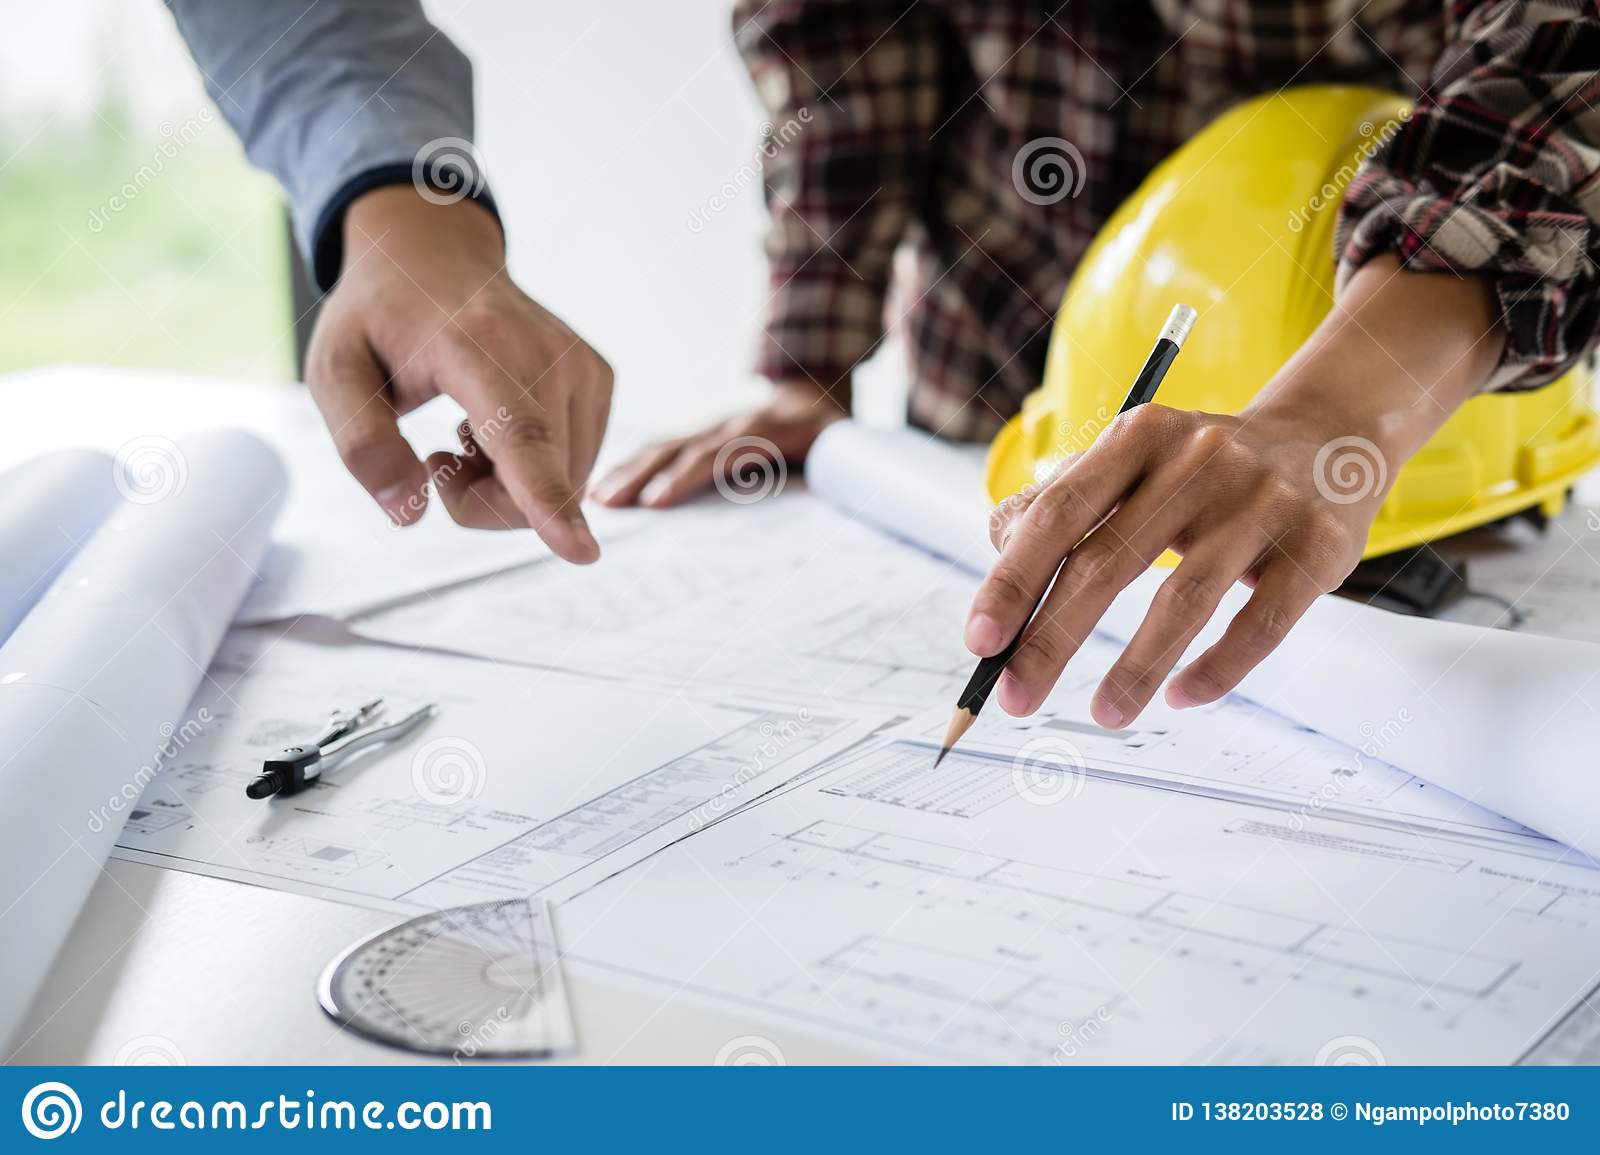 Construction engineering or architect discuss a blueprint while checking information on drawing and sketching meeting for